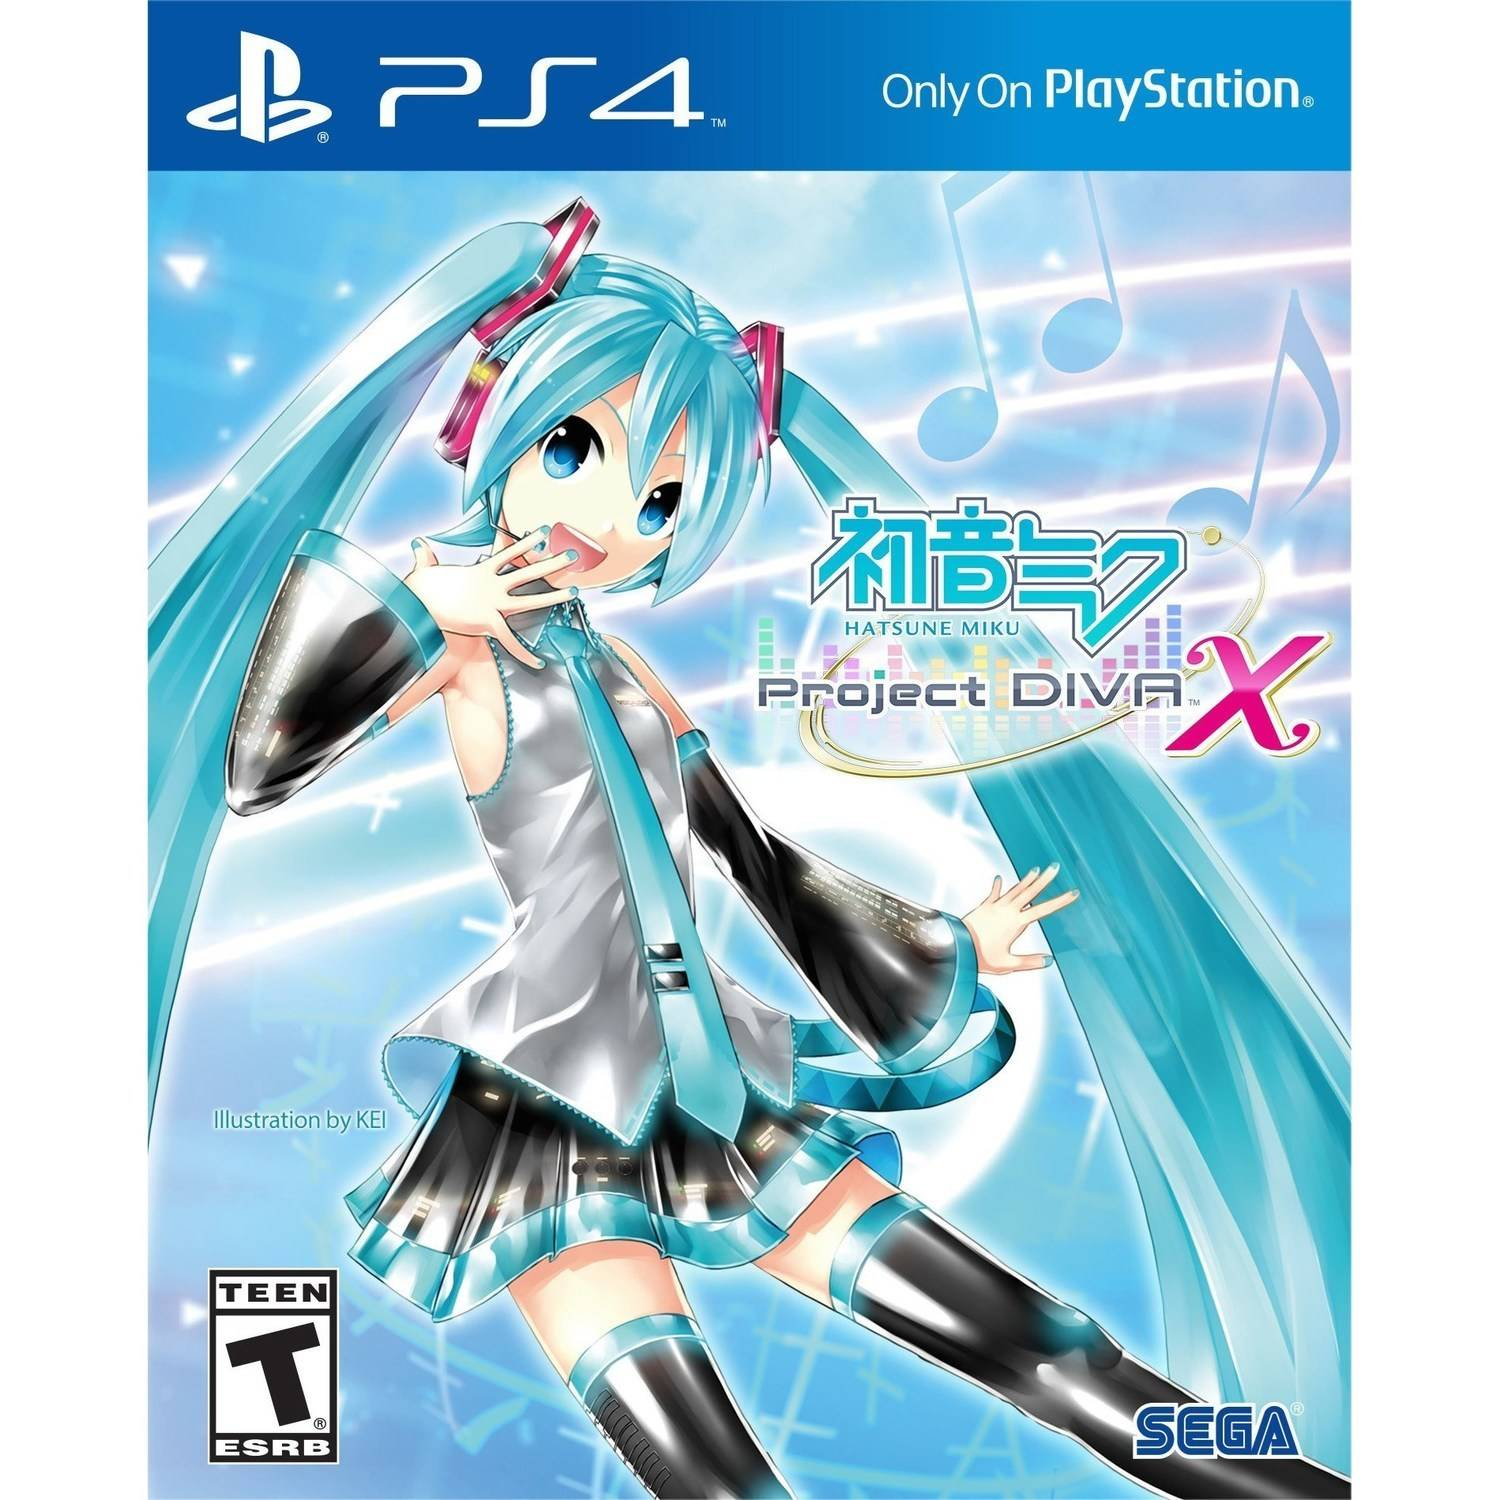 Hatsune Miku Project Diva (PS4)